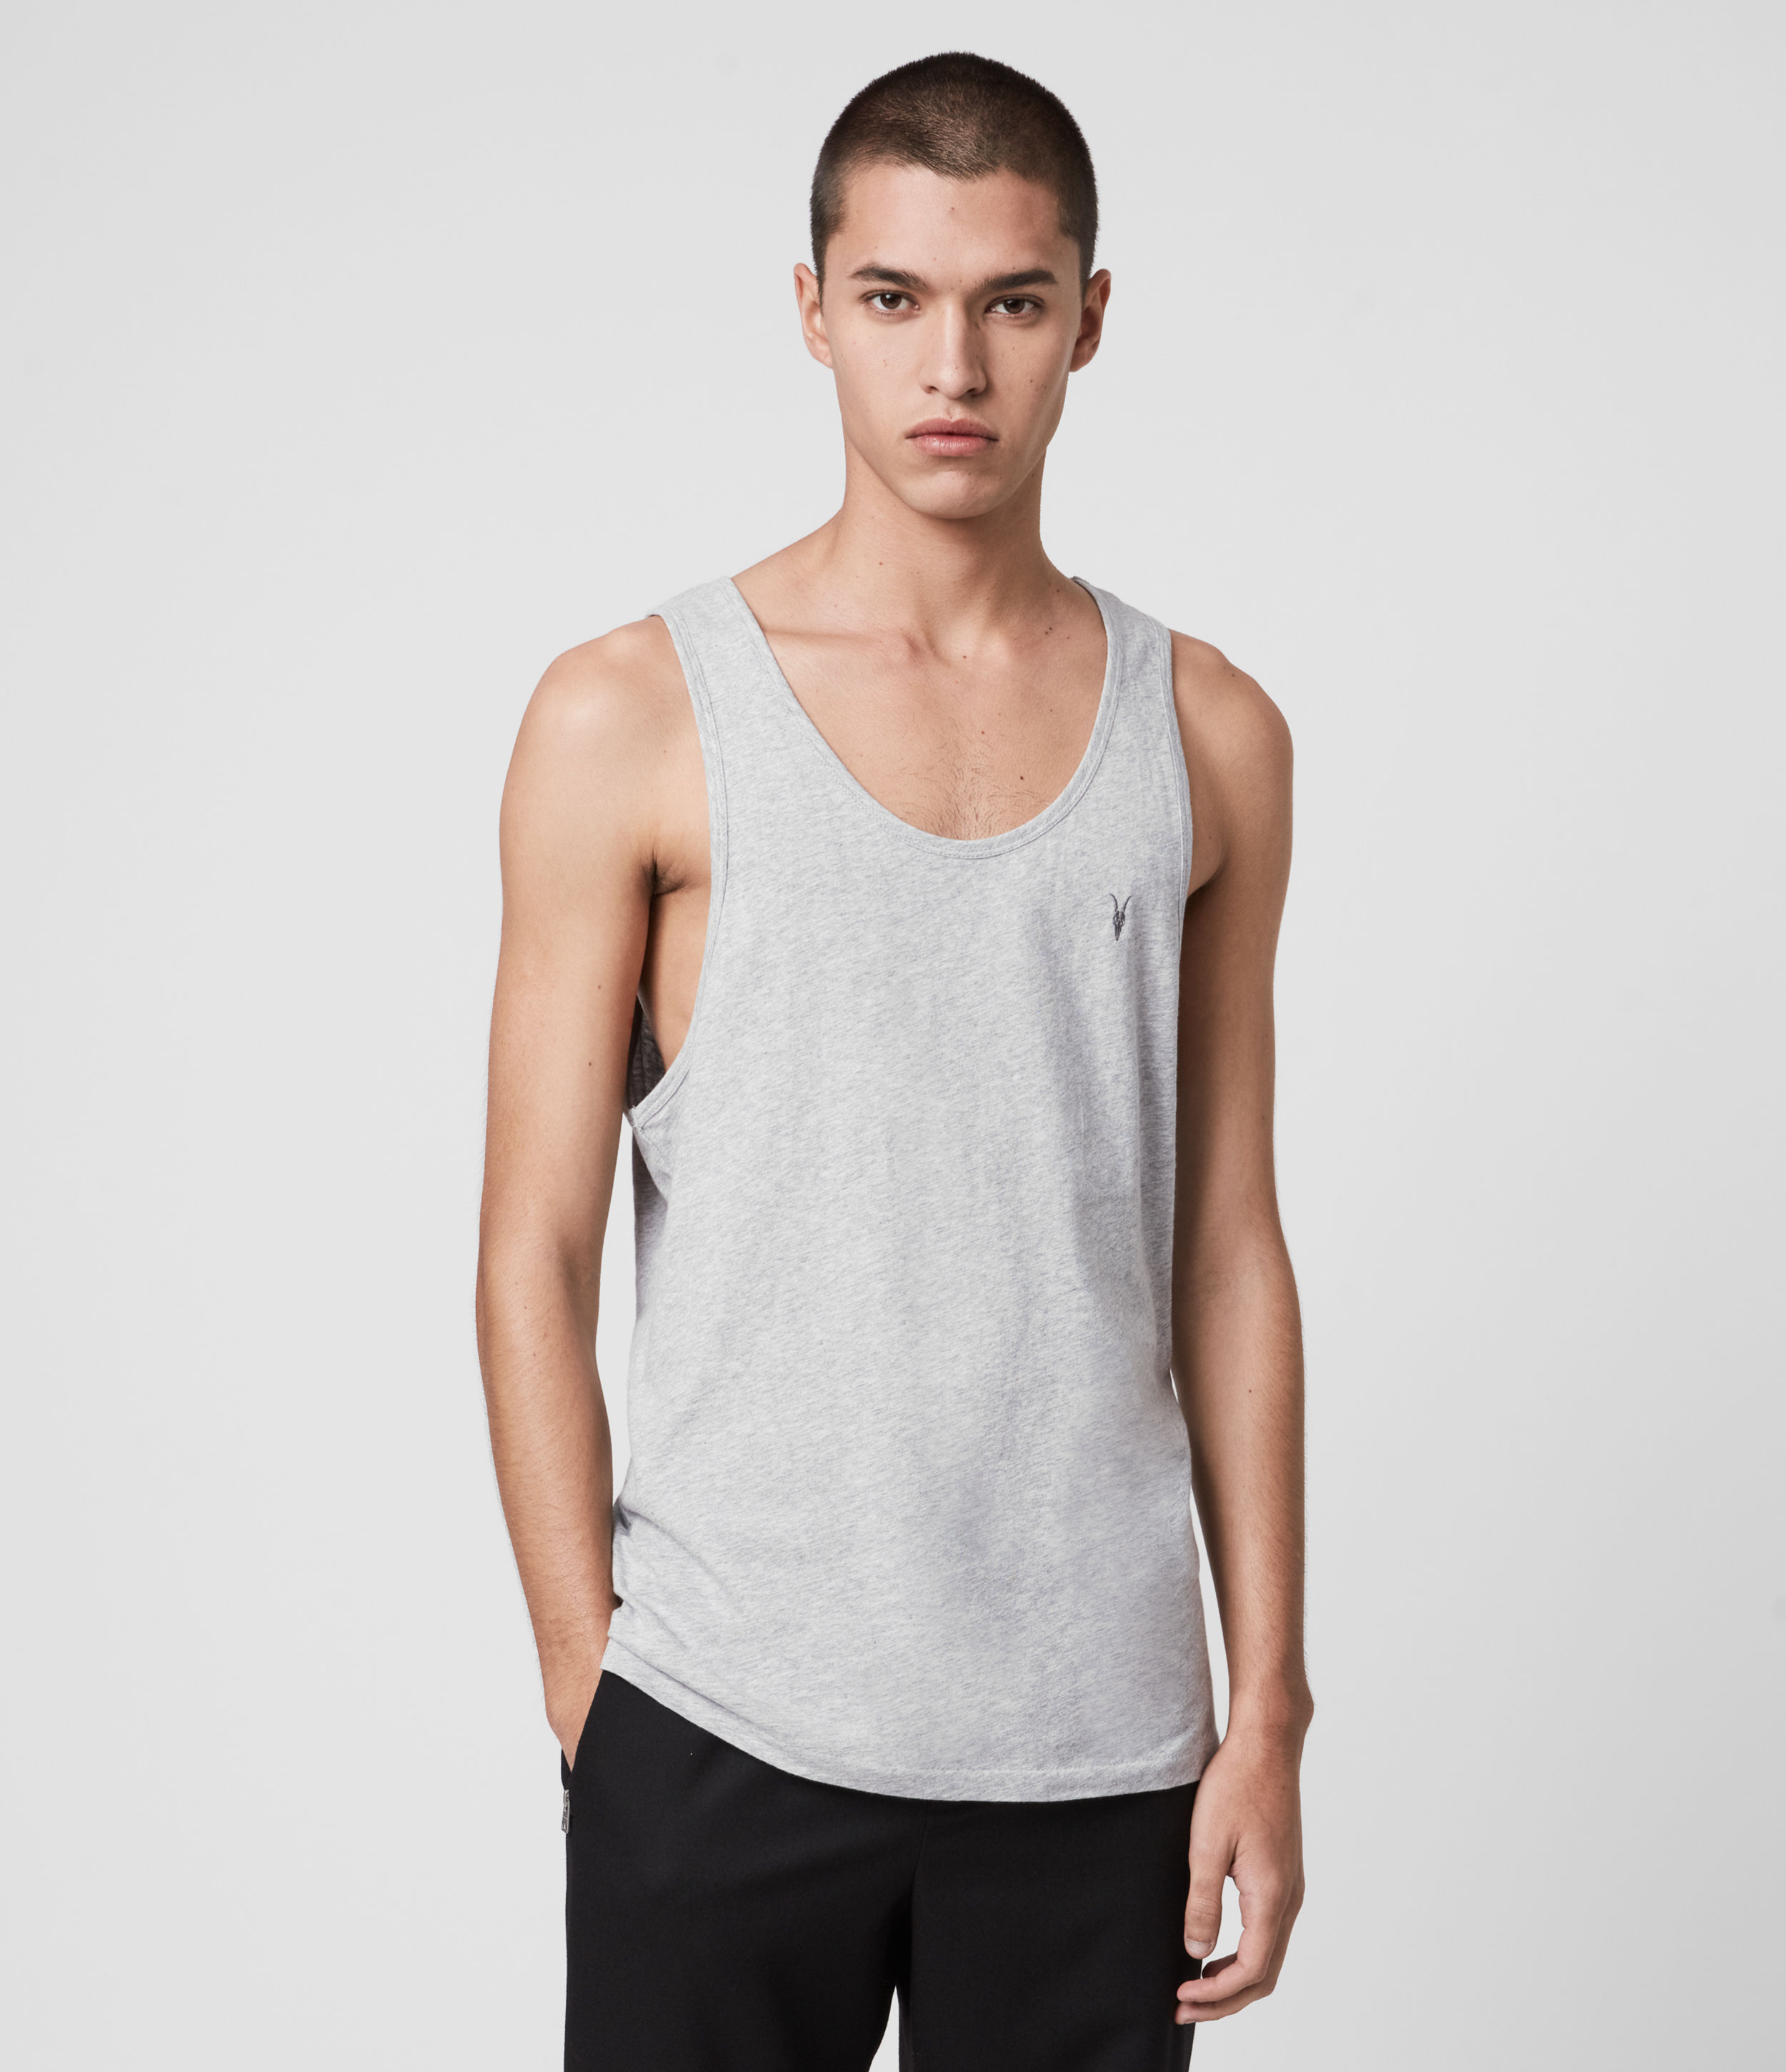 AllSaints Men's Cotton Lightweight Tonic Vest, Grey, Size: XXL